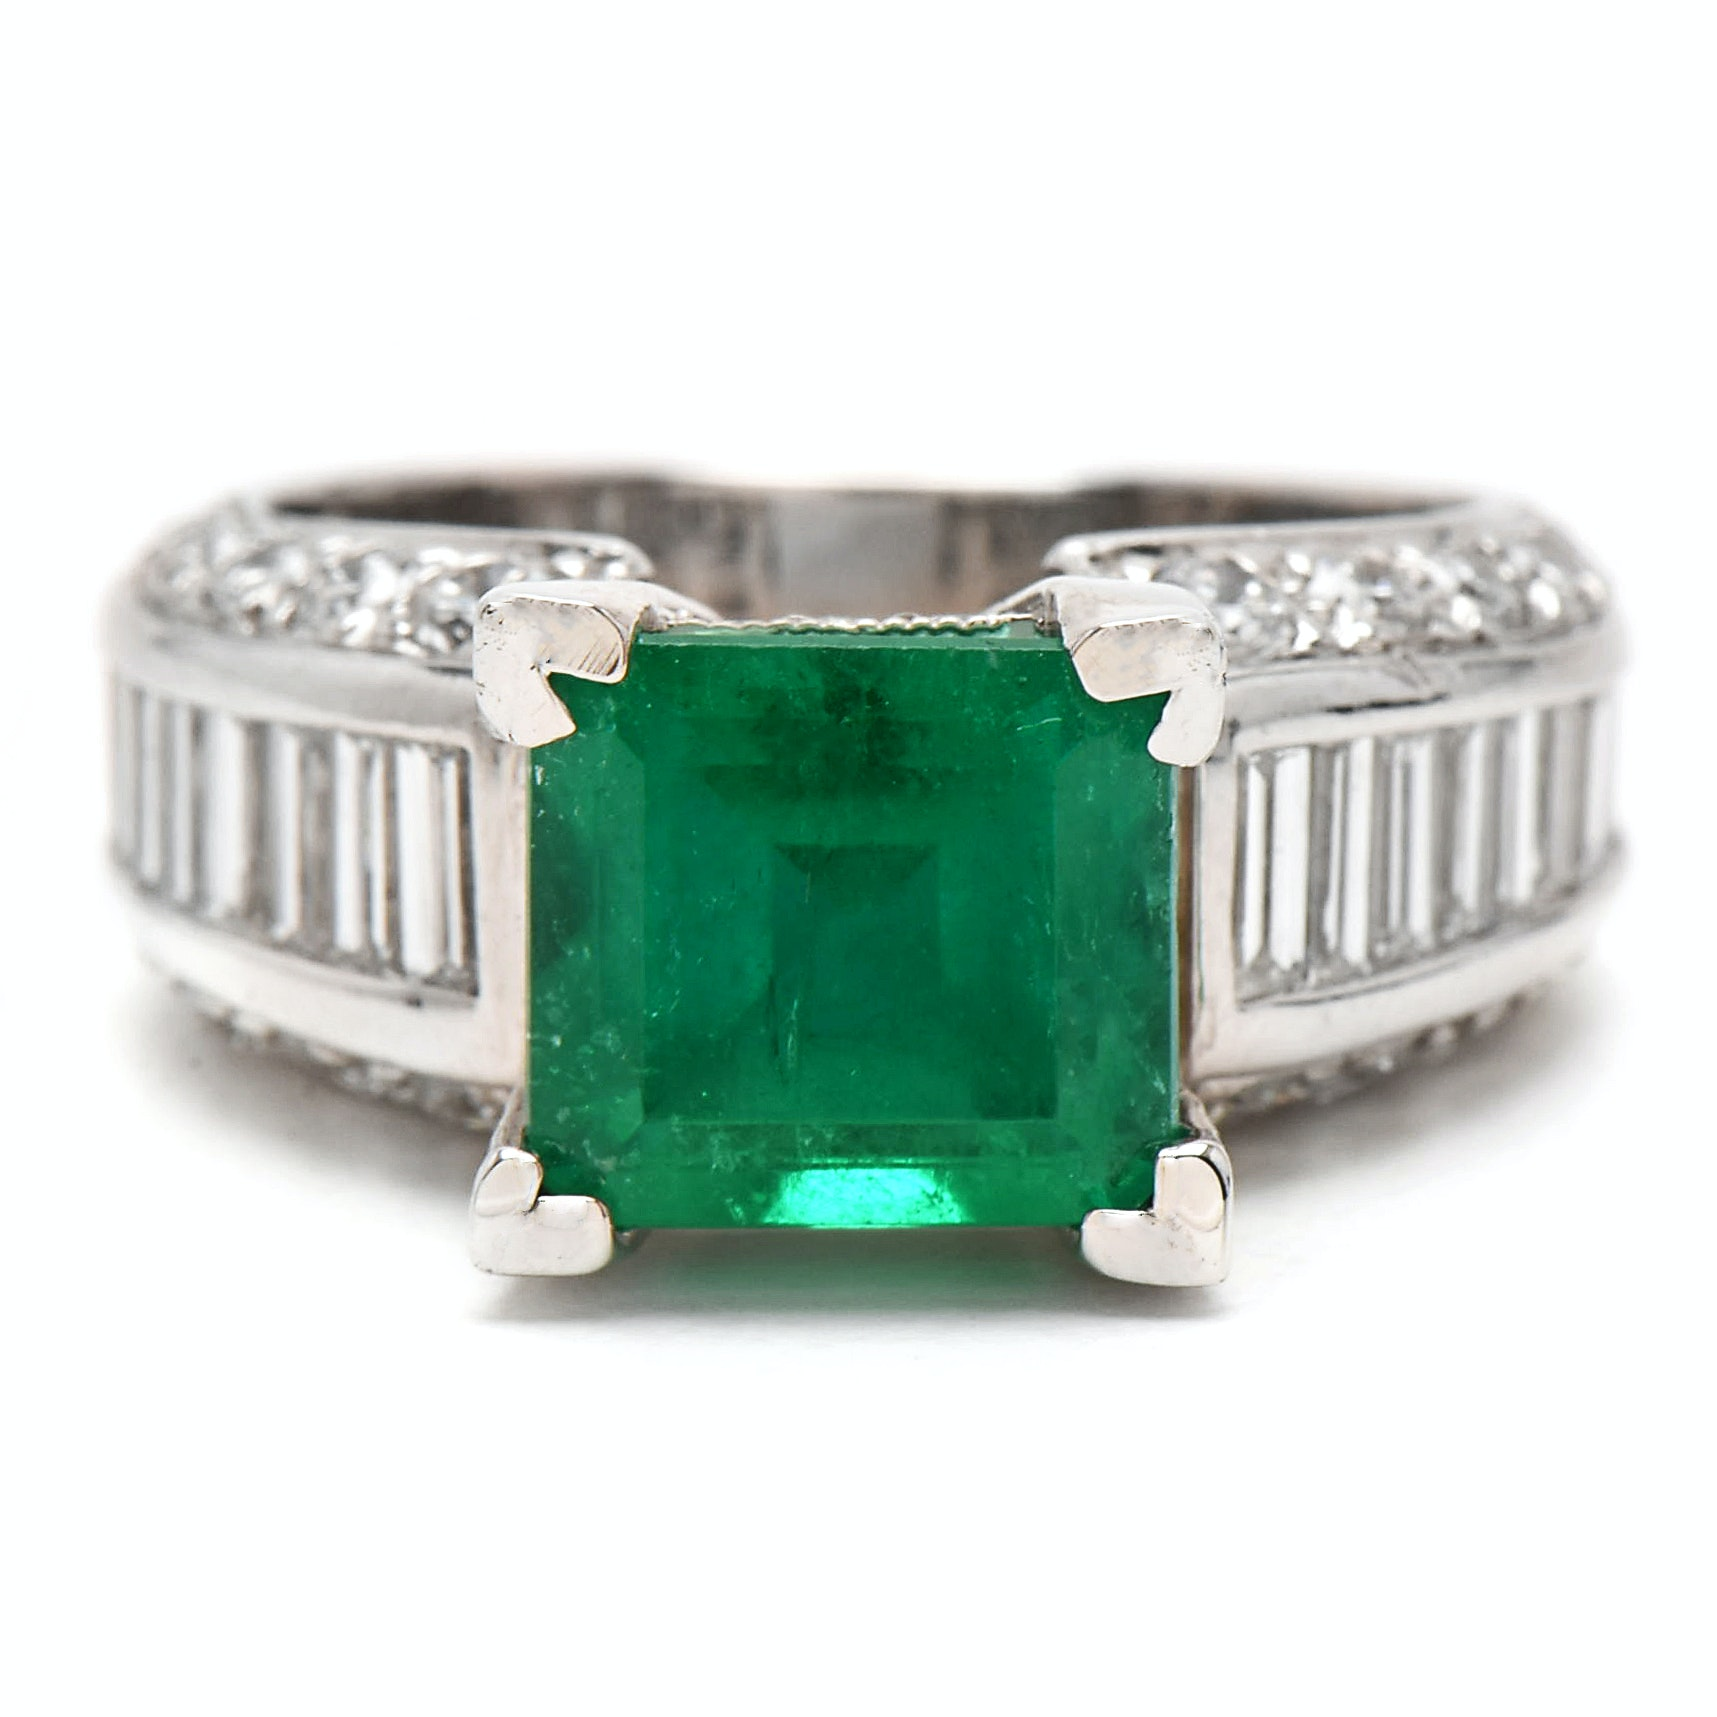 Platinum 3.02 CT Columbian Emerald and 2.72 CTW Diamond Ring with GIA Report